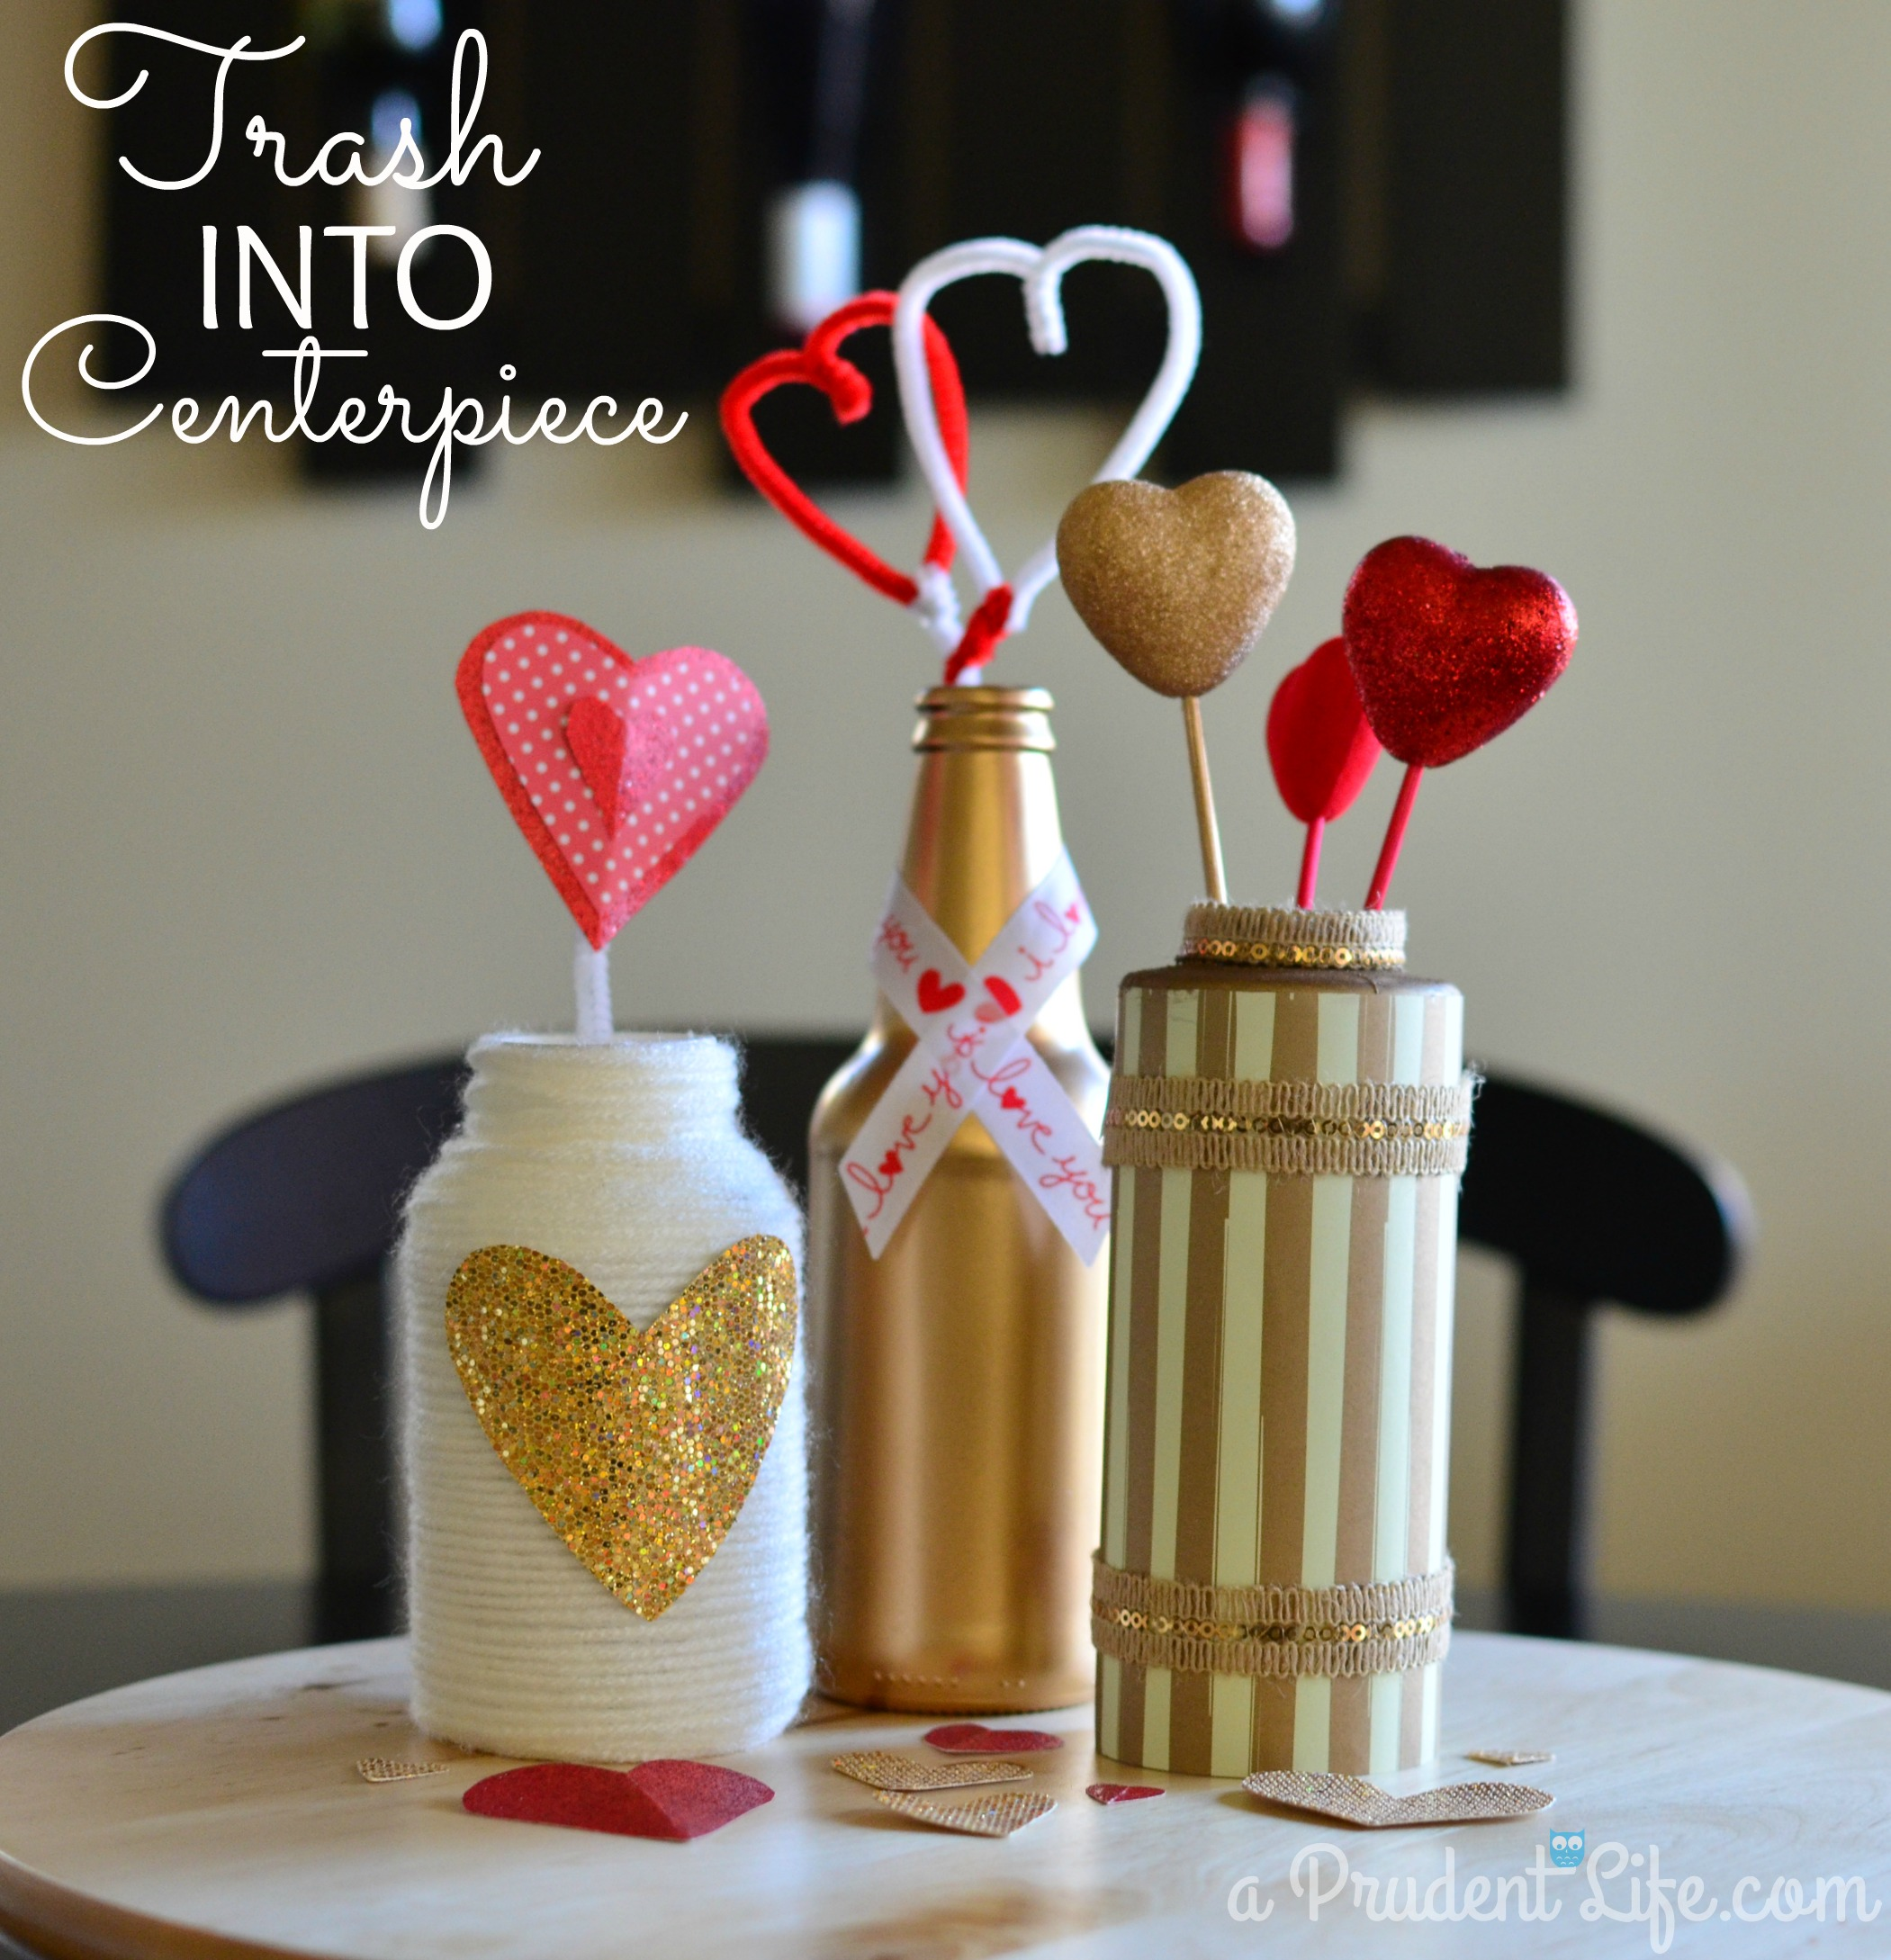 Trash into Centerpiece - Upcycled Valentine Vases